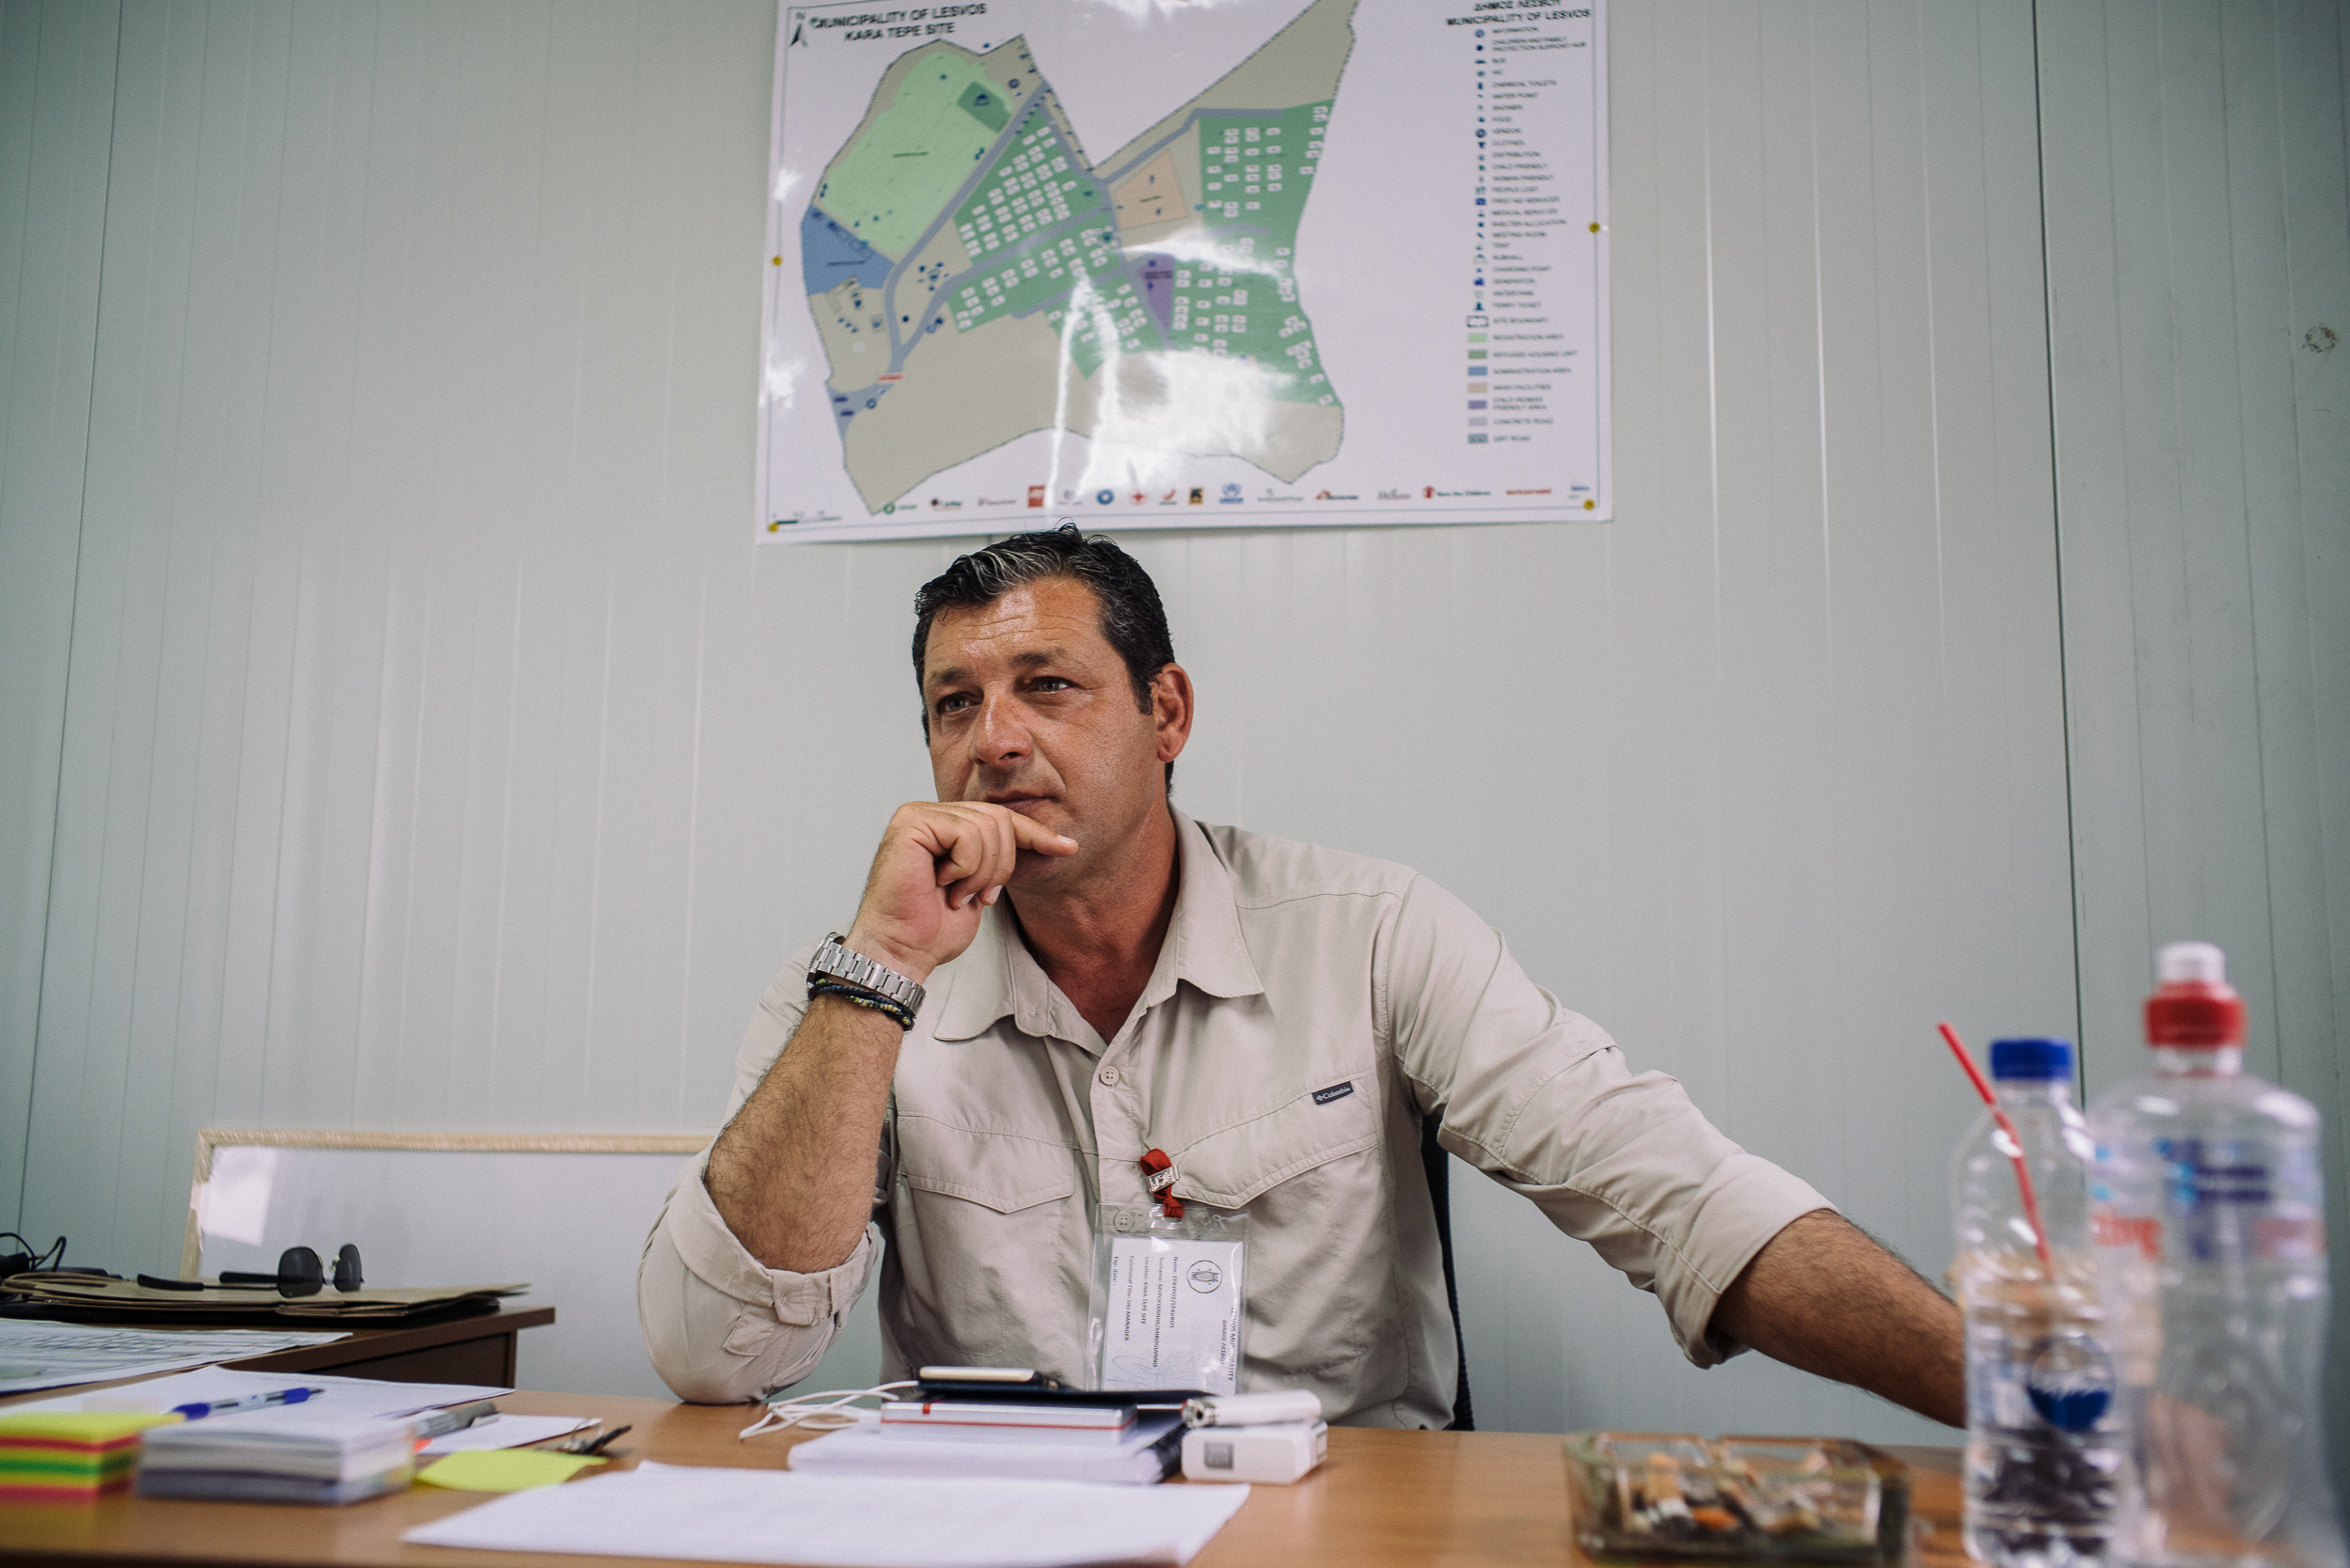 """""""Some people call them refugees or migrants but when they are here in this camp, they are my people. It is like an open village here,"""" said Mr Stravos, the camp manager for Kara Tepe camp, in describing his attitude towards the crisis."""